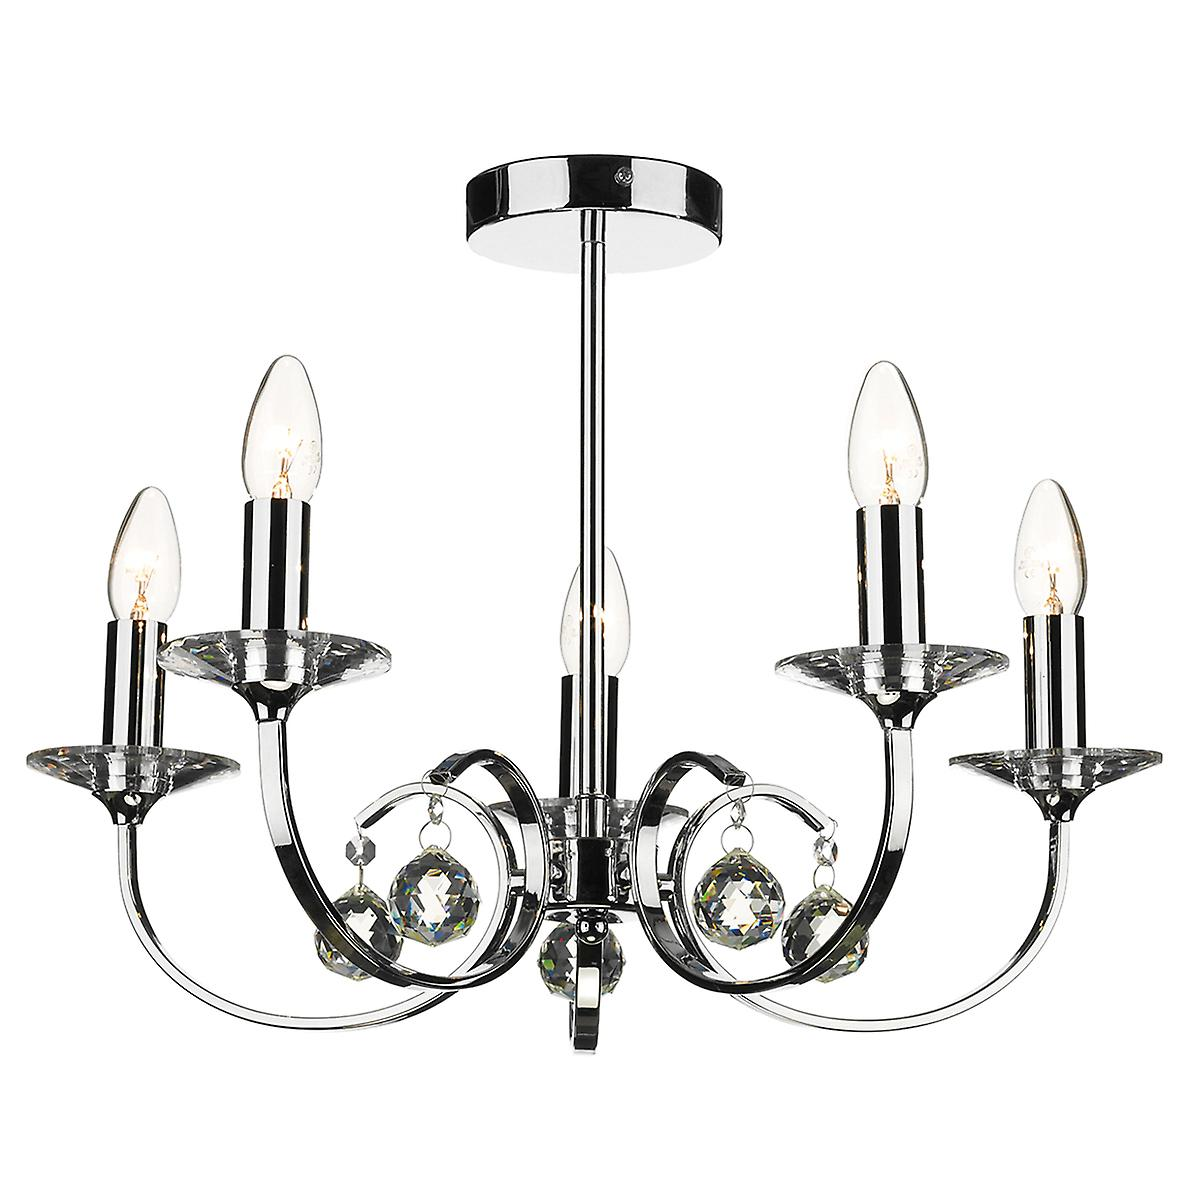 Dar ALL0550 Allegra 5 Arm Modern Chrome Ceiling Pendant With Crystal Sconces